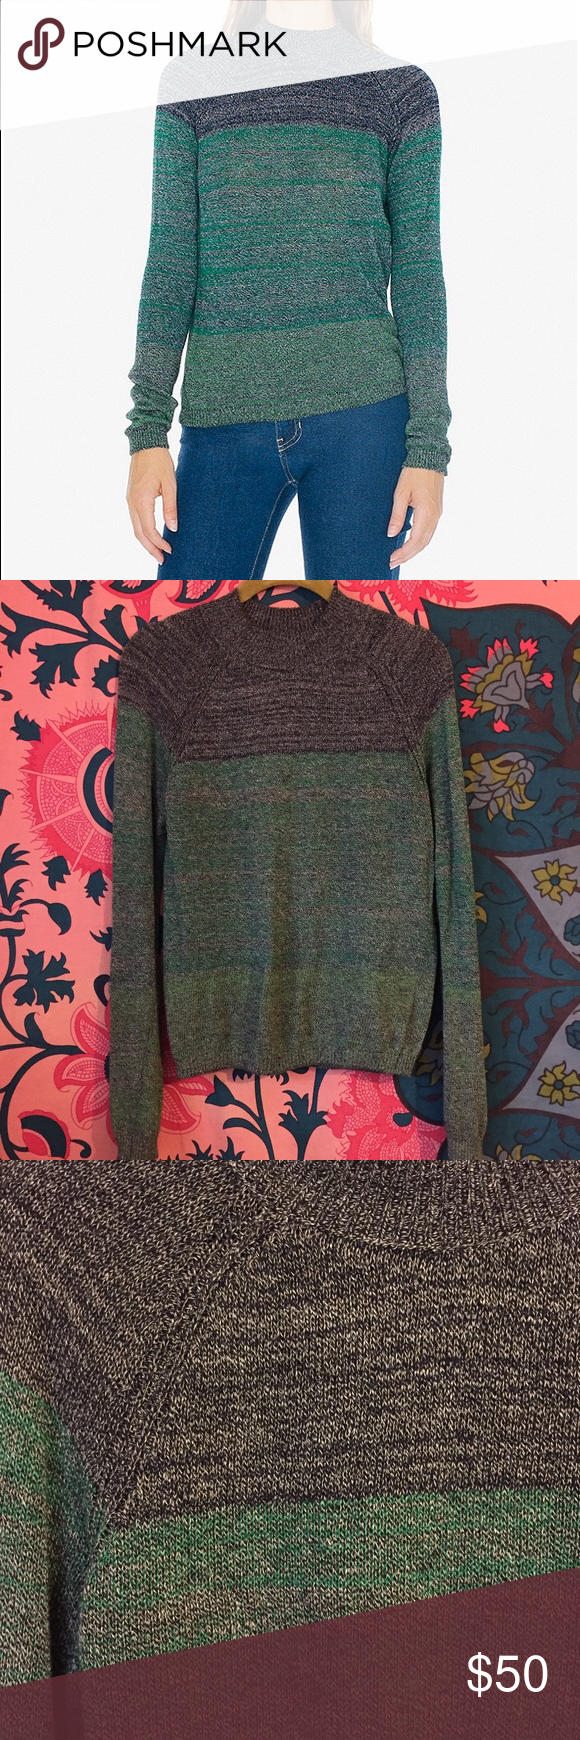 """❗️WINTER SALE ❗️American Apparel Gaia Raglan 💚♠️ Worn three times! Like new. There is a small pull on the lower right arm, as seen in the last photo. It's barely noticeable, but I want to be transparent with any interested buyers!♠️💚 Made with scrap yarn, this lightweight cotton/nylon sweater has a raglan design, ribbed trim and mock neck. In two limited edition color combinations. • 98% Cotton 2% Nylon construction • Small is approximately 20 3/4"""" (53 cm) in total length • Hand Wash…"""